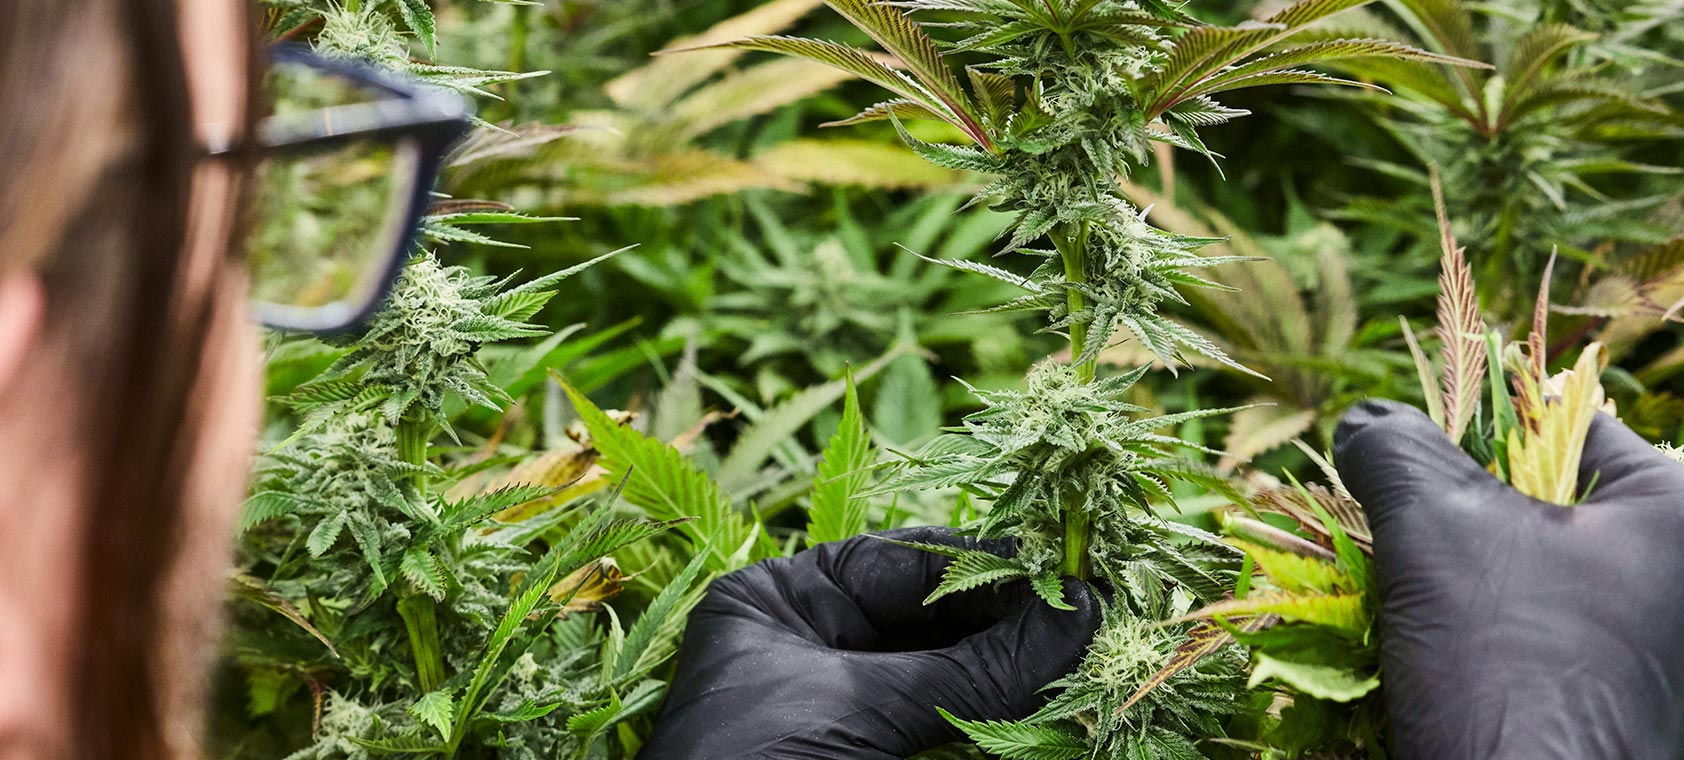 An employee de-fanning a flowering marijuana plant at the Native Roots Cannabis Co. in Denver, CO